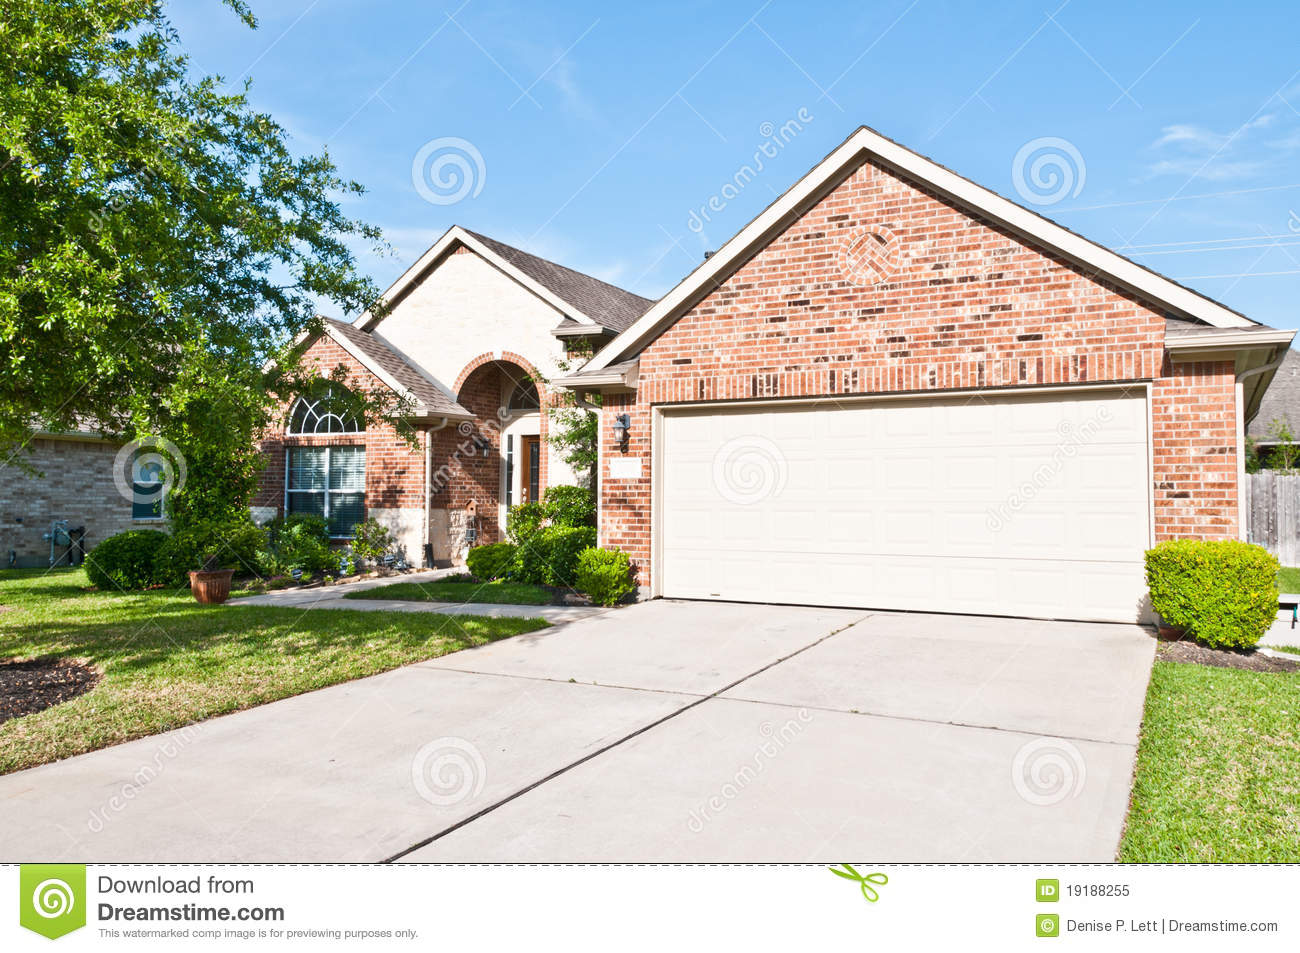 Front view of contemporary one story brick and stone house garage and driveway in american suburban neighborhood